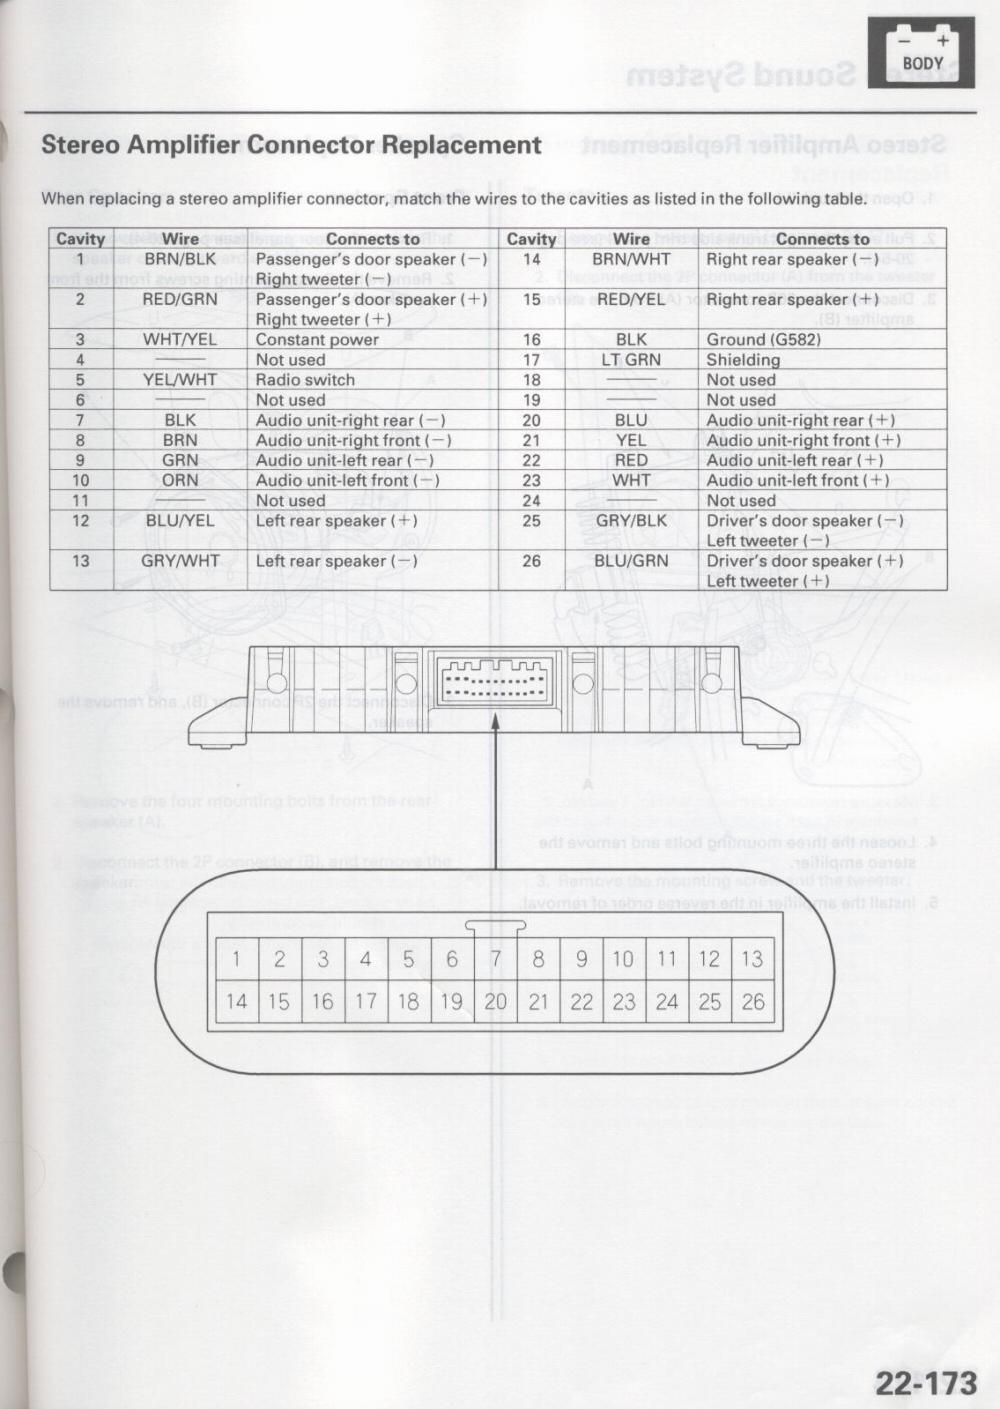 Acura 2002 TL car stereo amplifier wiring diagram harness car radio stereo audio wiring diagram autoradio connector wire  at mifinder.co